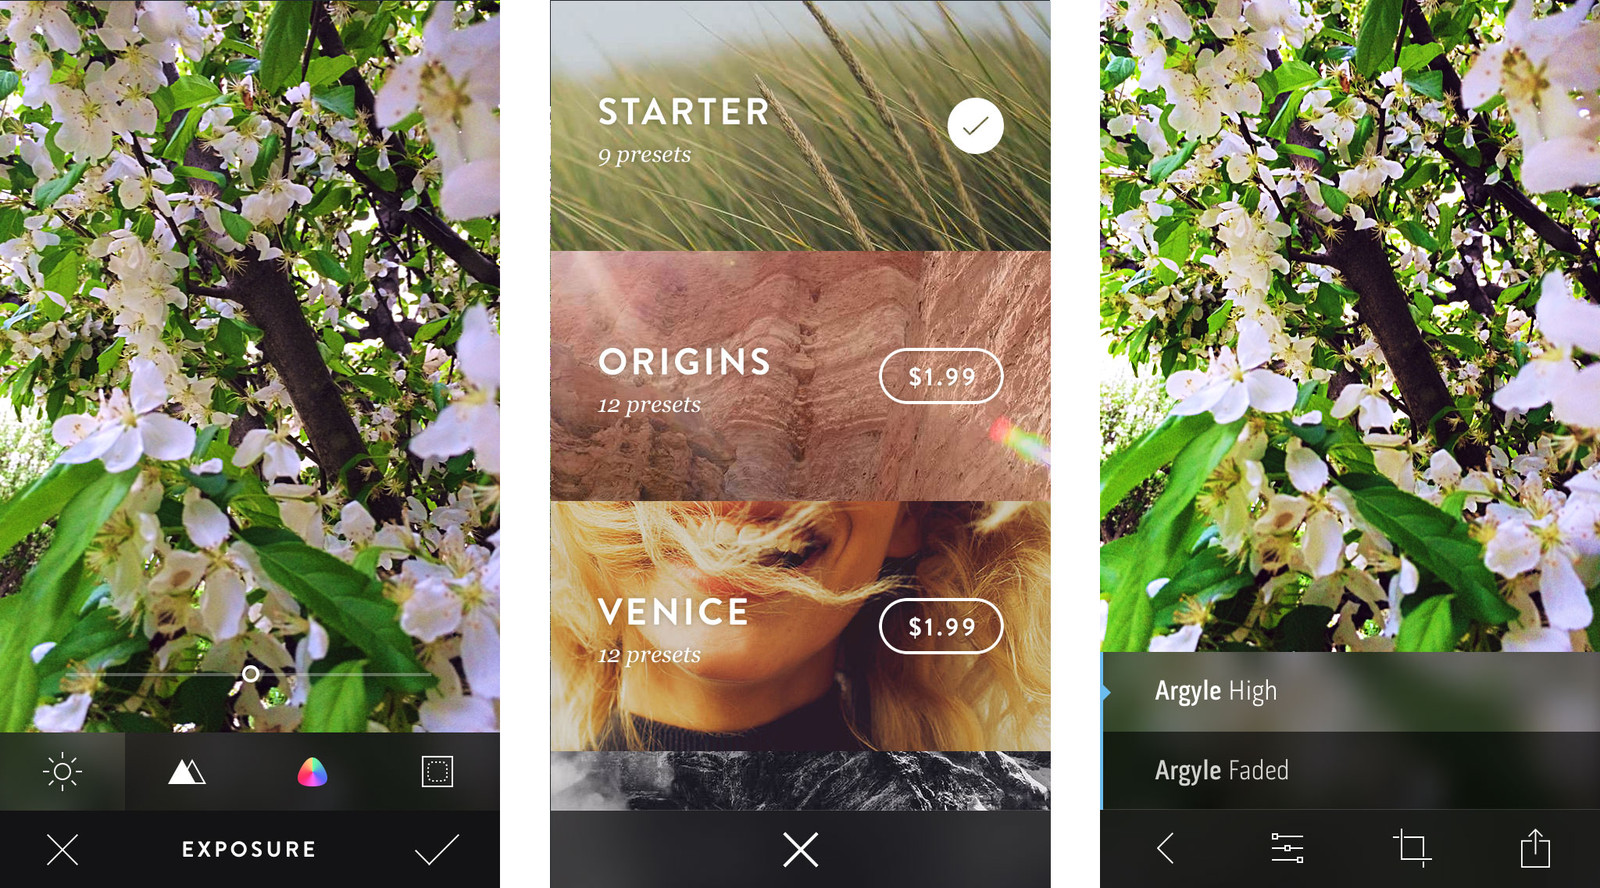 Best photo filter and effects apps for iPhone: Litely